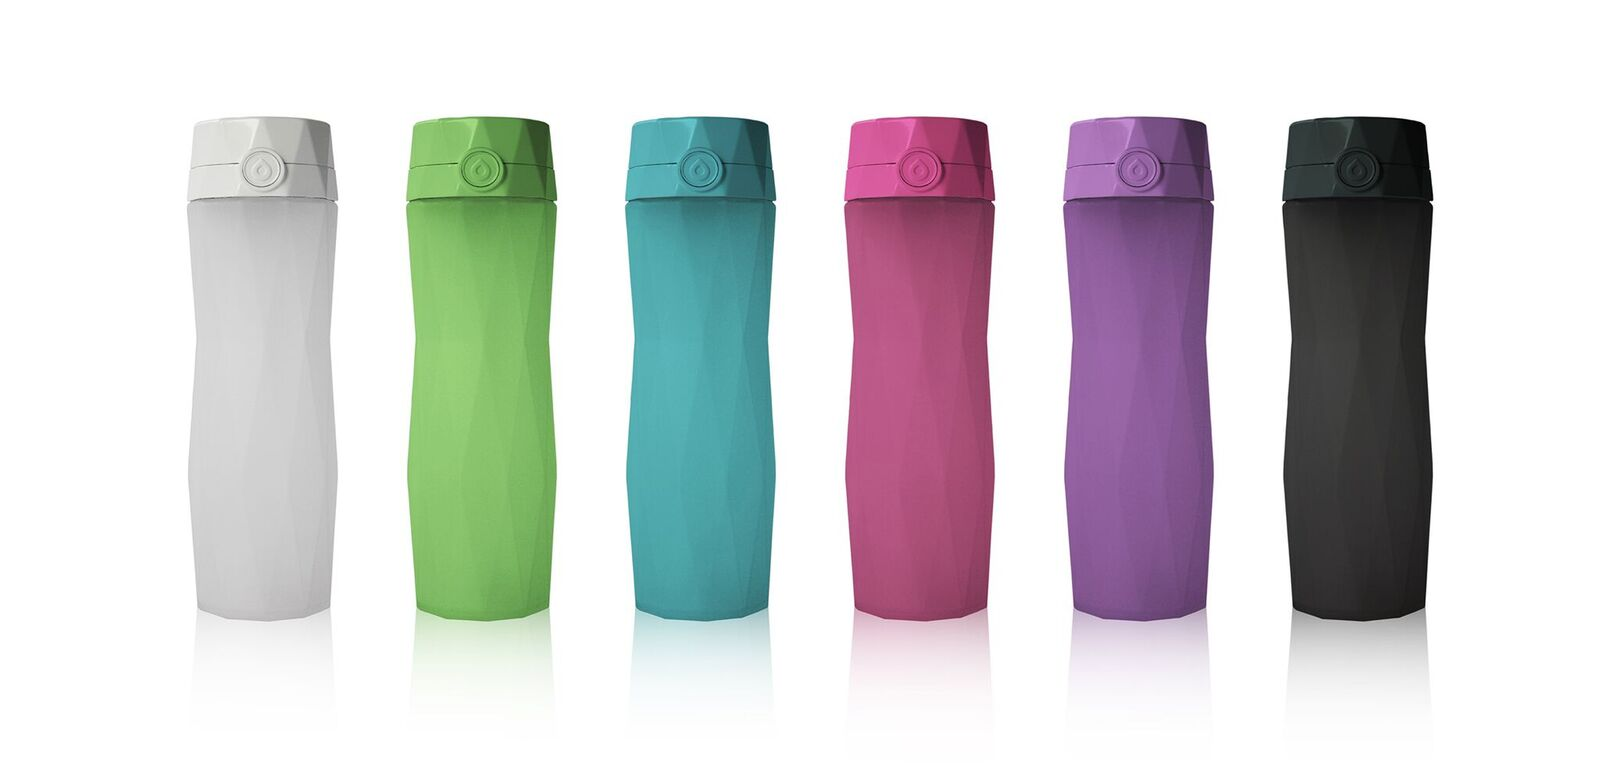 brighter glow, enhanced tracking, stronger connection, faster syncing and even more new app features. This is the second generation of our smart water bottle that syncs with an app on your phone to track your water intake and glows to remind you to drink. Cleverly written notifications will help you reach your recommended daily water goal based on your personal parameters, location, and activity. Sync Hidrate Spark with your favorite health apps to see a complete picture of your health.